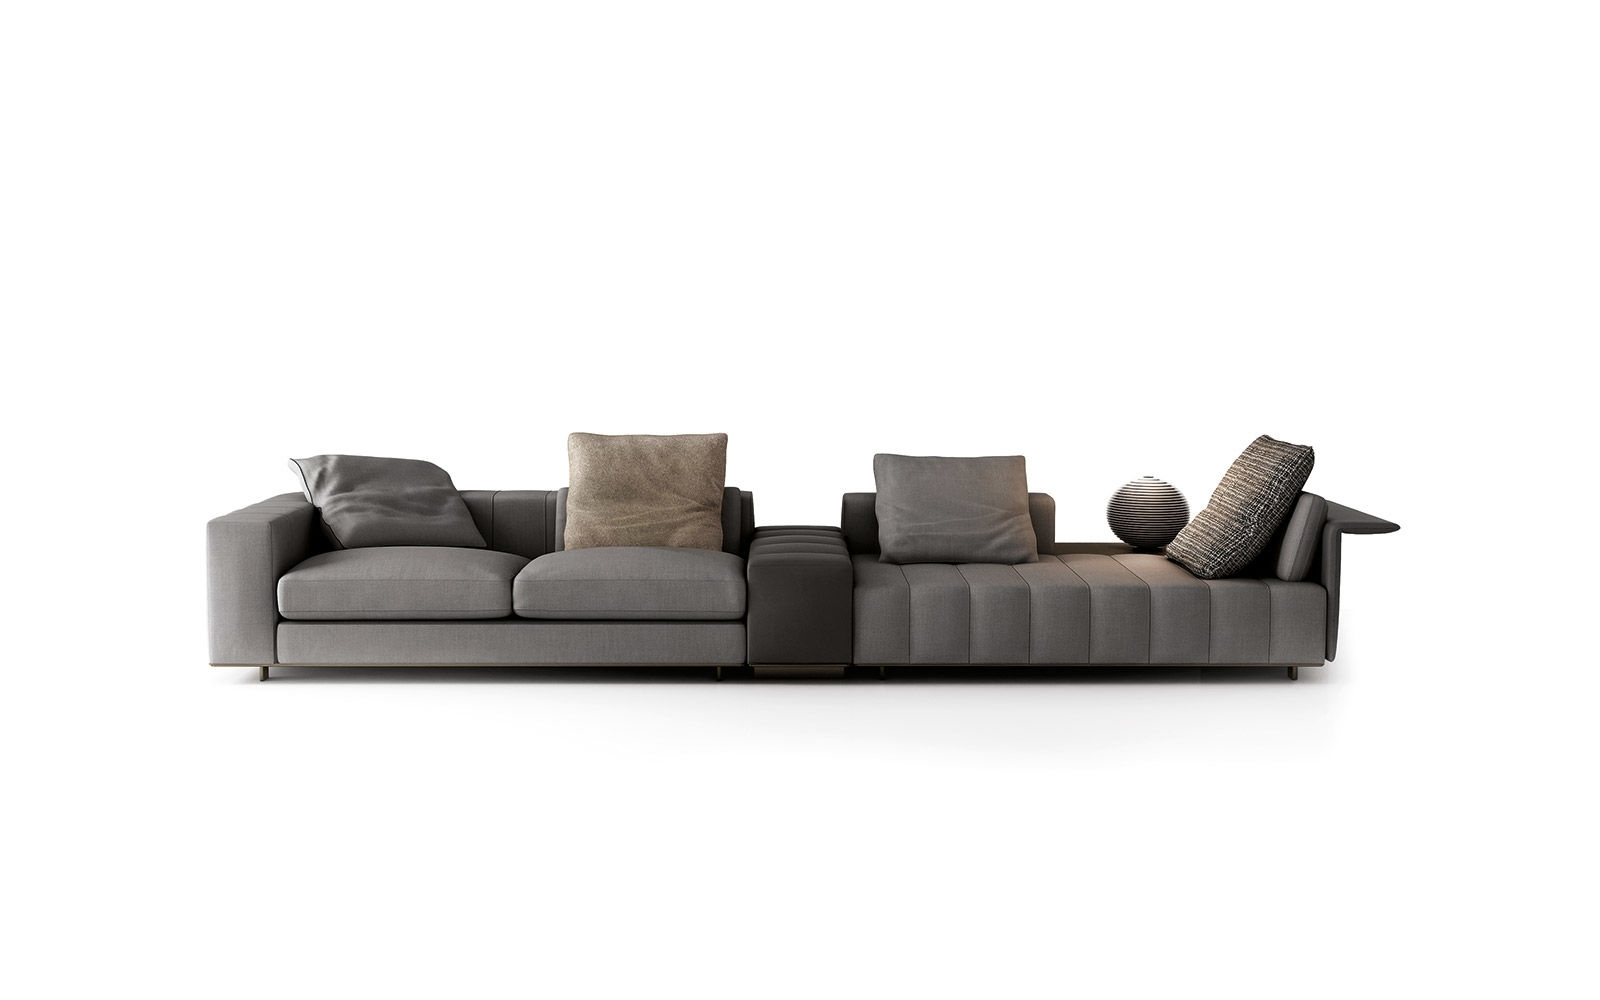 Freeman Seating System | Sofas – En Pertaining To Calder Grey 6 Piece Manual Reclining Sectionals (View 20 of 25)